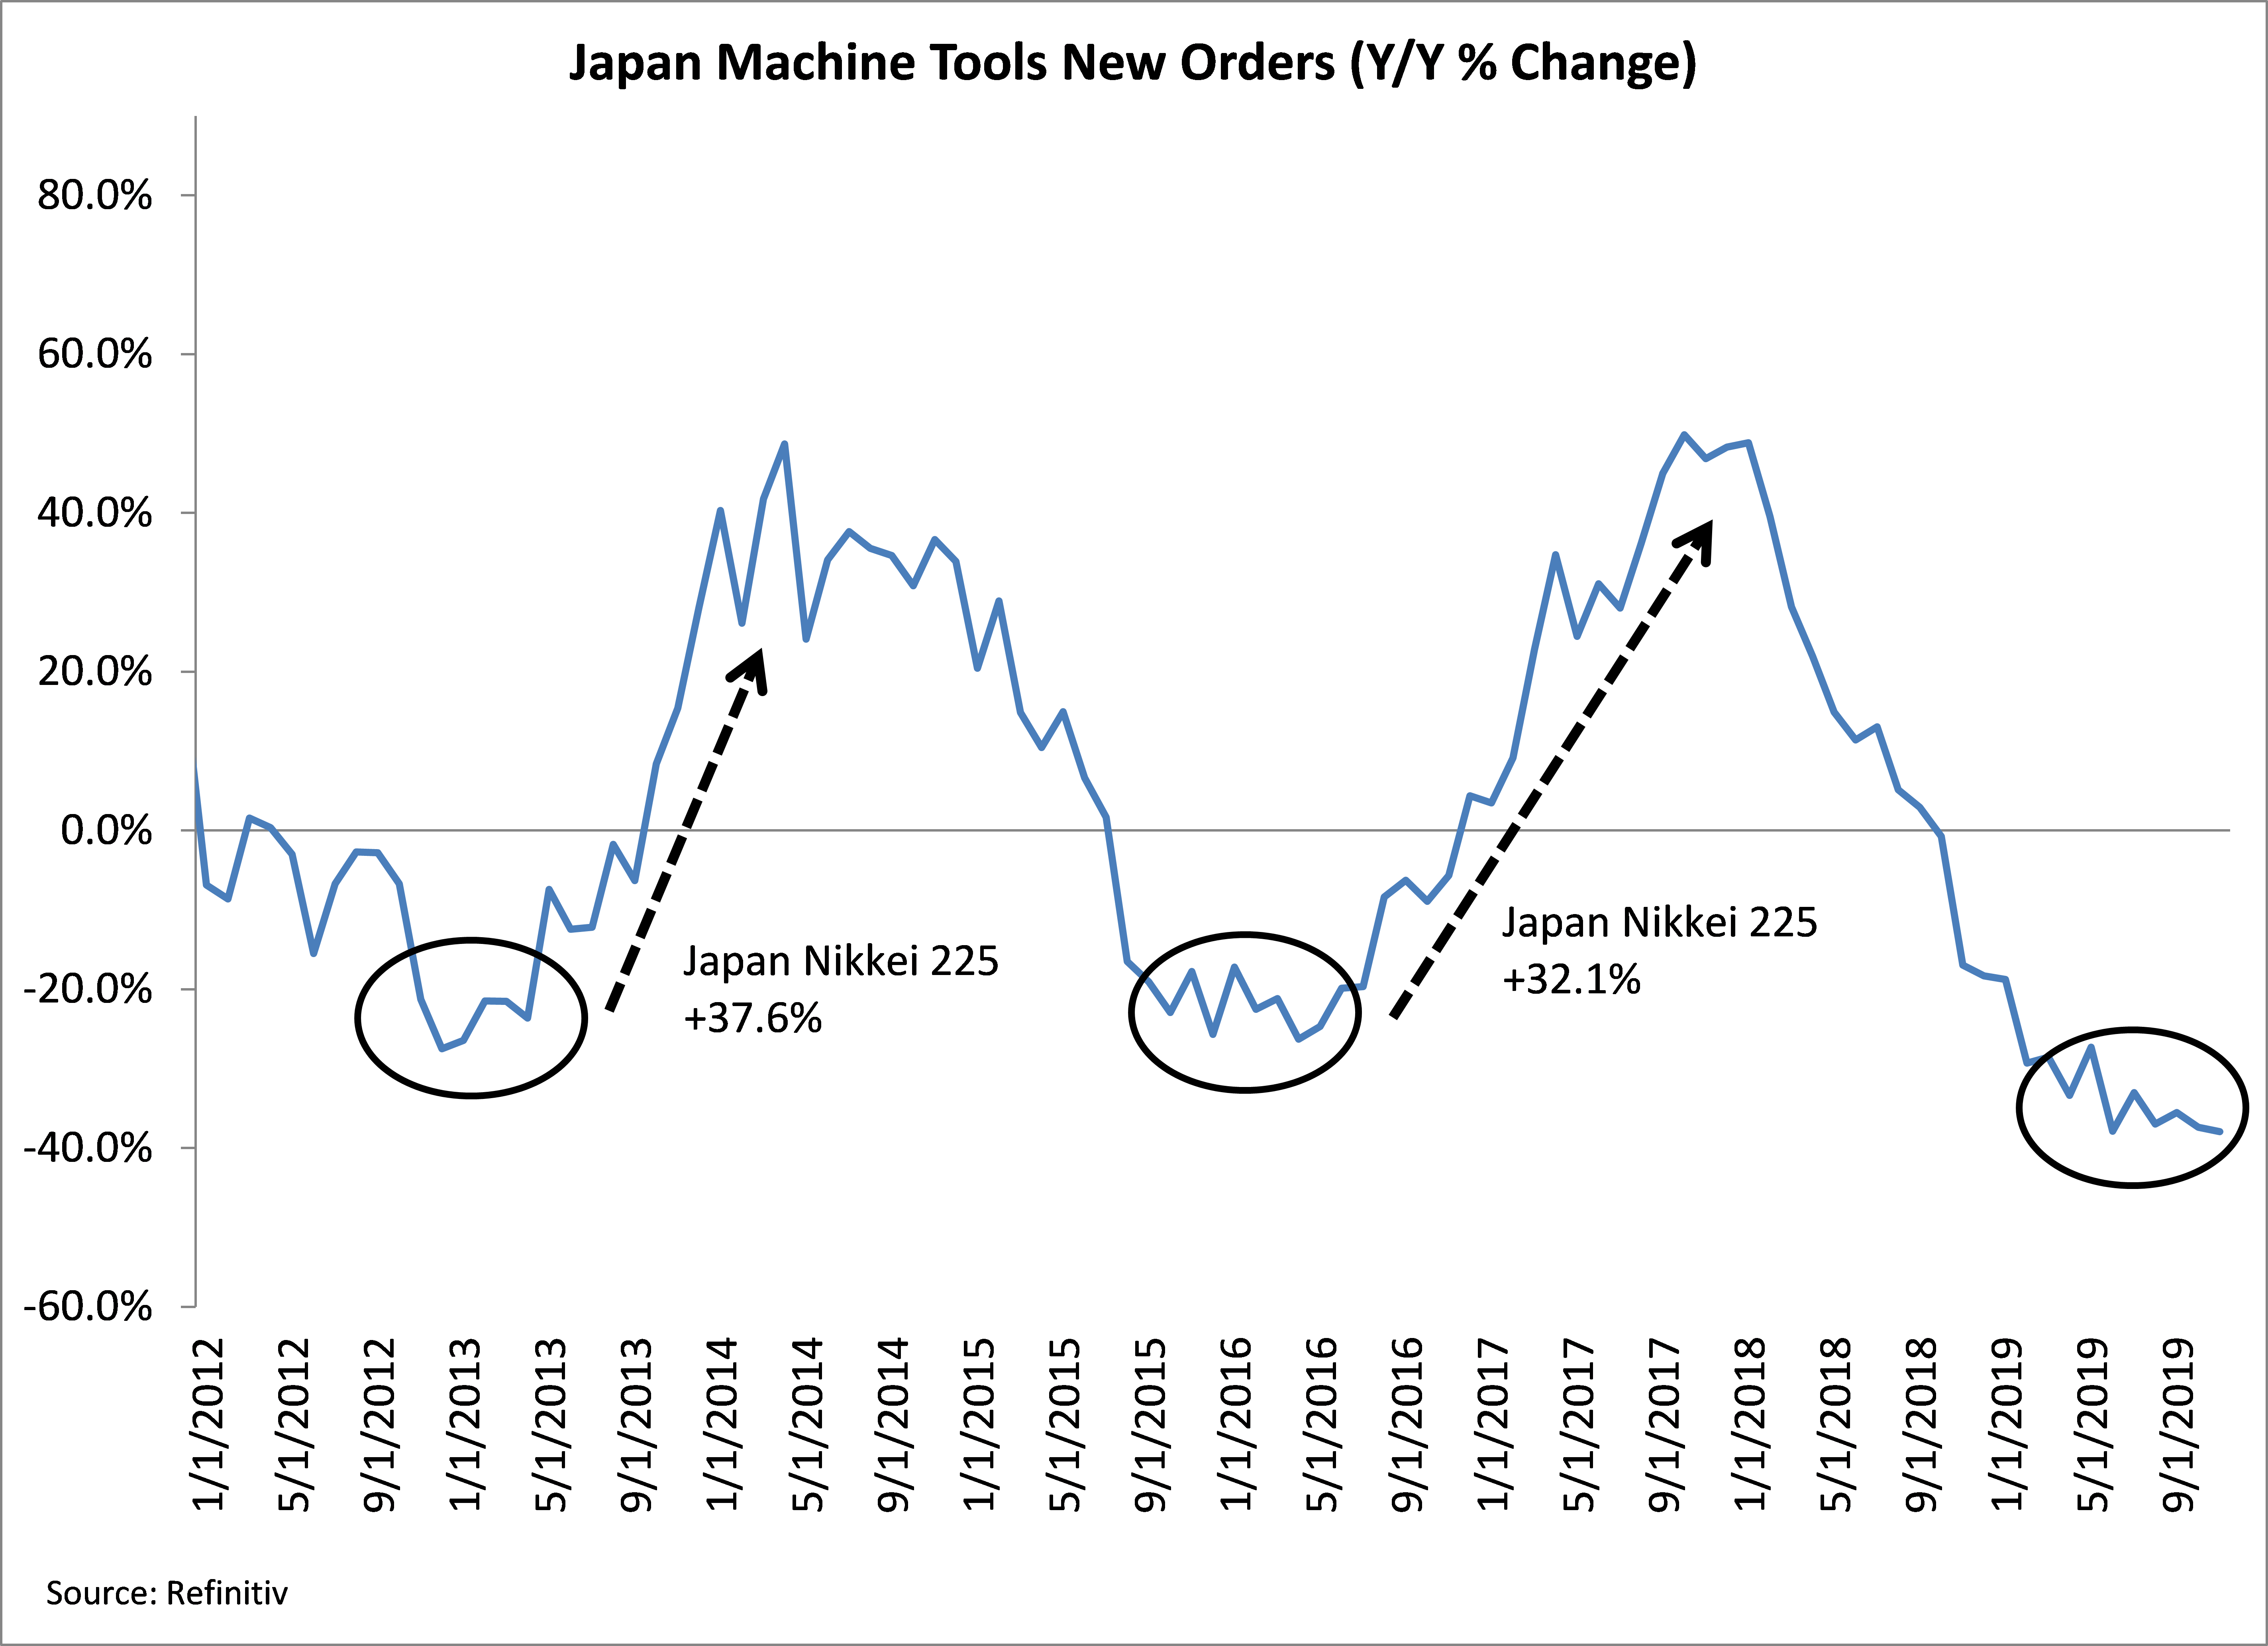 Japan Machine Tools New Order Y/Y & Change